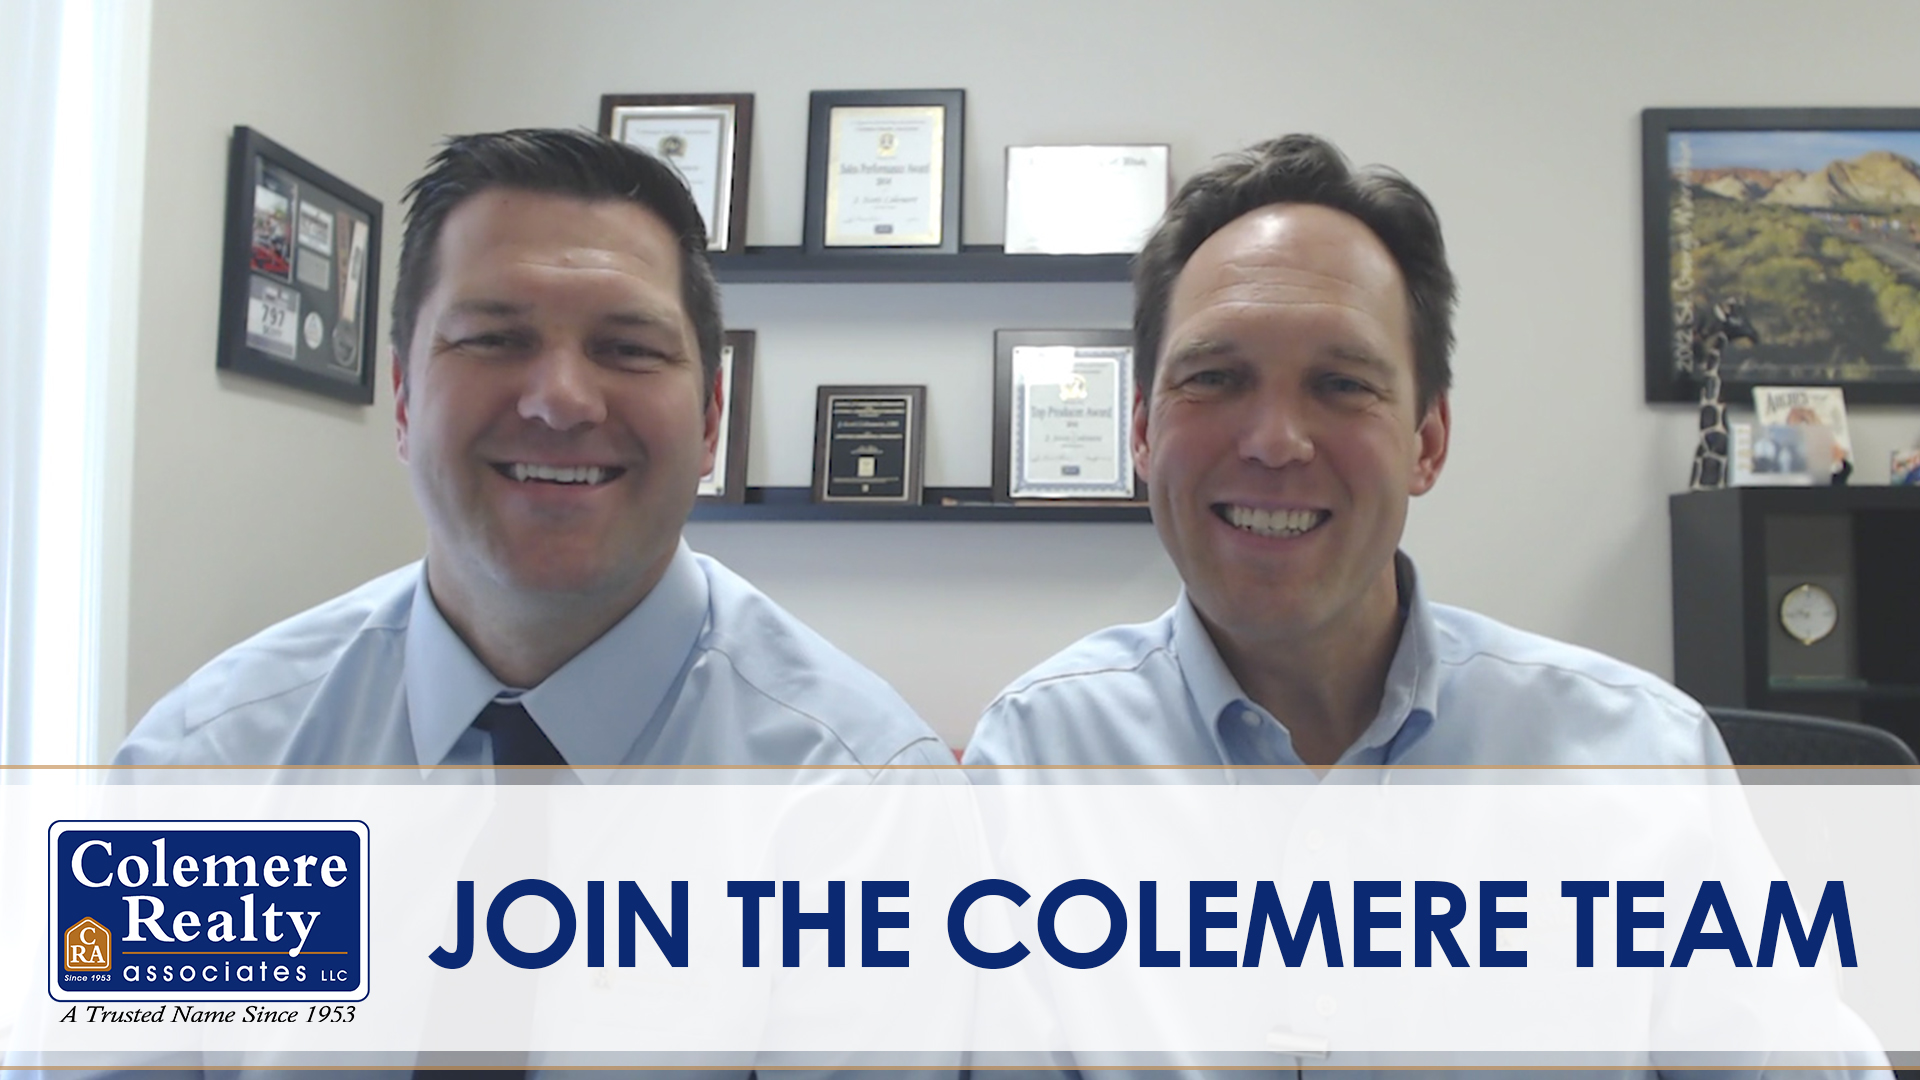 Colemere Realty Is Hiring Agents